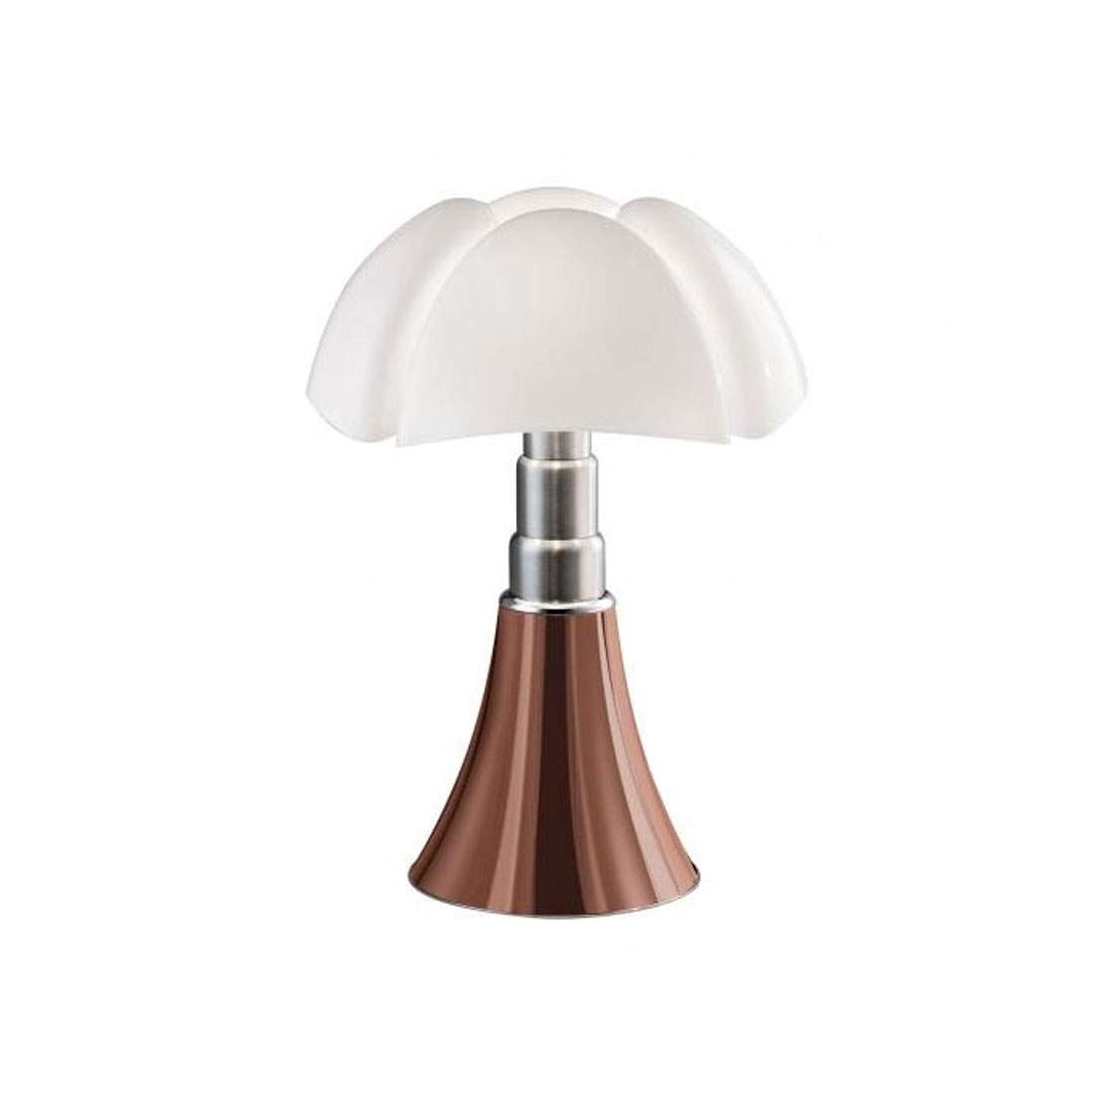 lampe poser martinelli luce minipipistrello led lampes poser. Black Bedroom Furniture Sets. Home Design Ideas